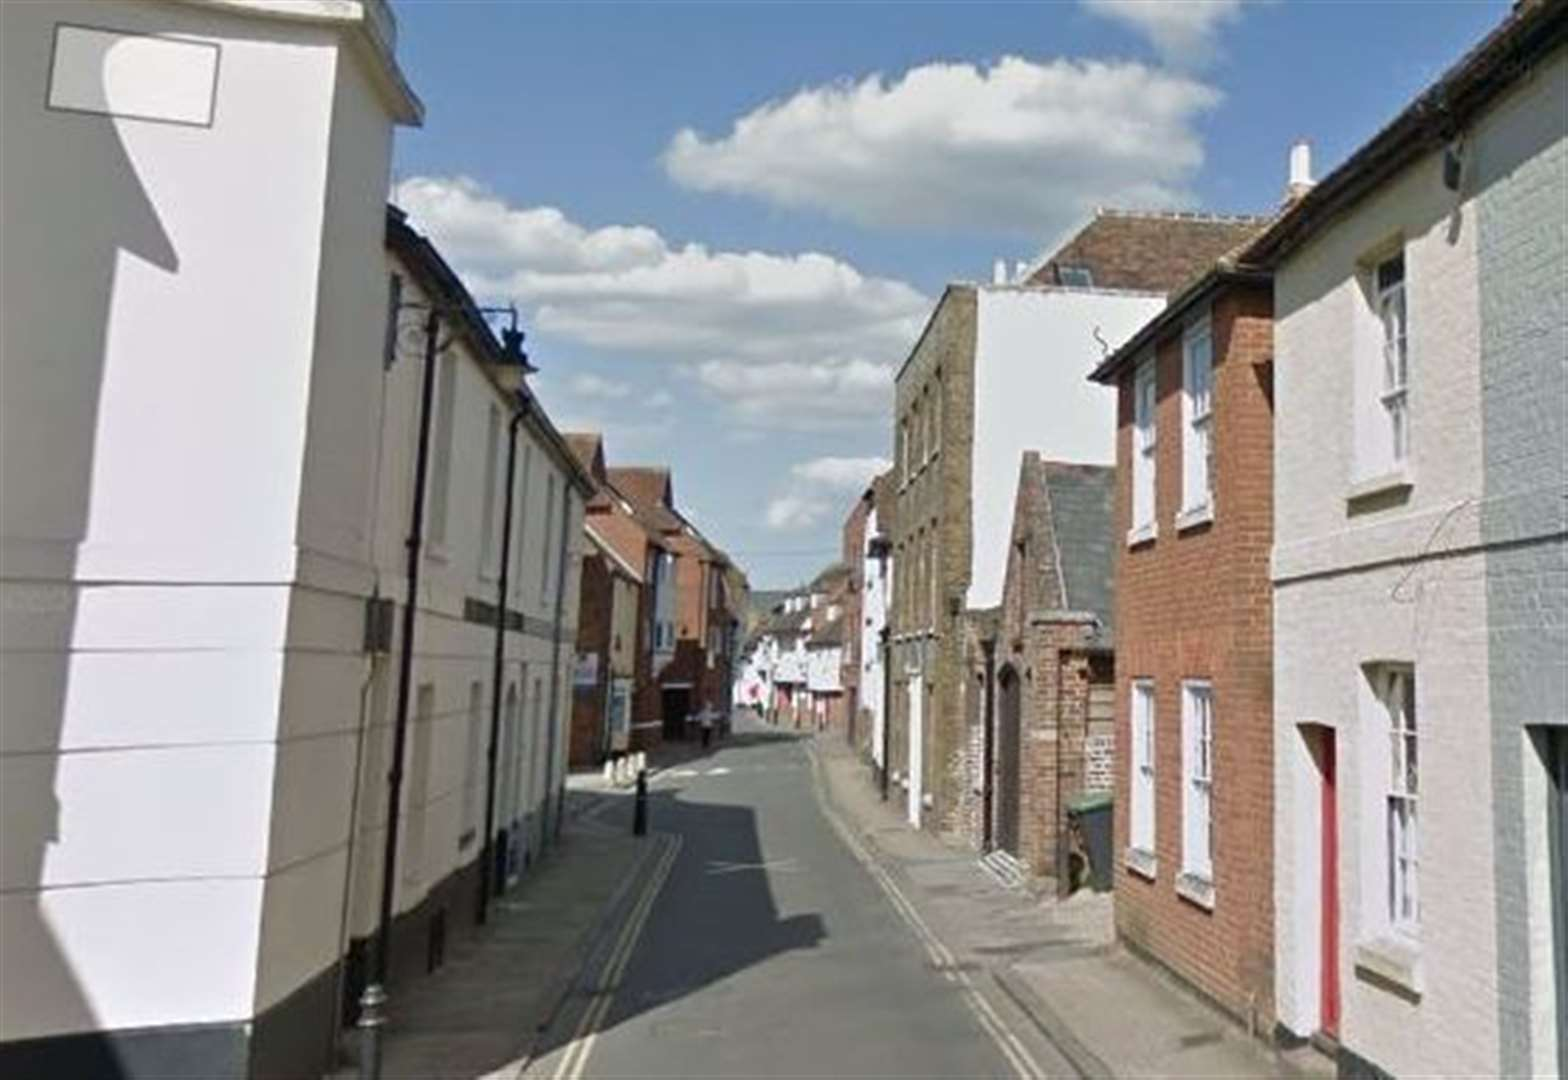 Rape arrest after woman 'attacked in alley'